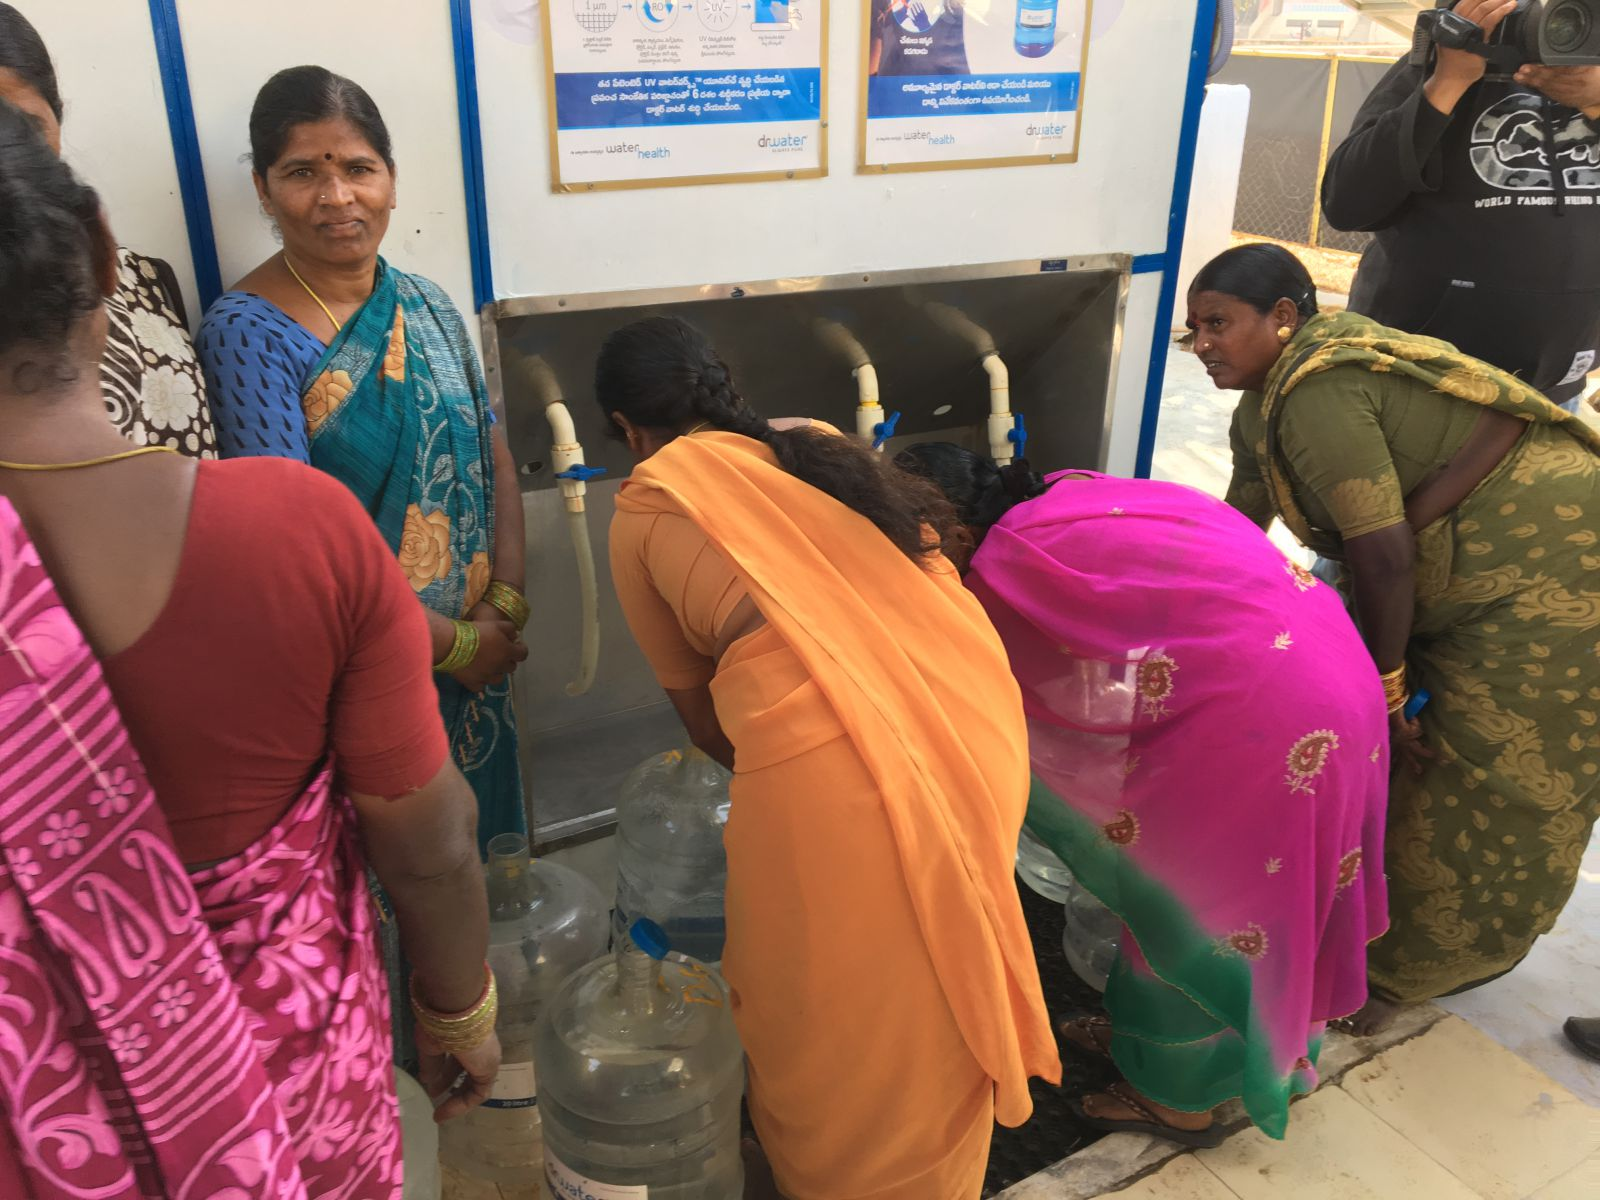 OPIC also funds a project involving women to provide affordable clean drinking water to low and middle-income peoplein India, at a price 1/3rd of bottled water through WaterHealth Vending Machines(WVM) are installed at railway stations, bus stations, shopping malls, public and private institutions. (Photo couortesy: OPIC